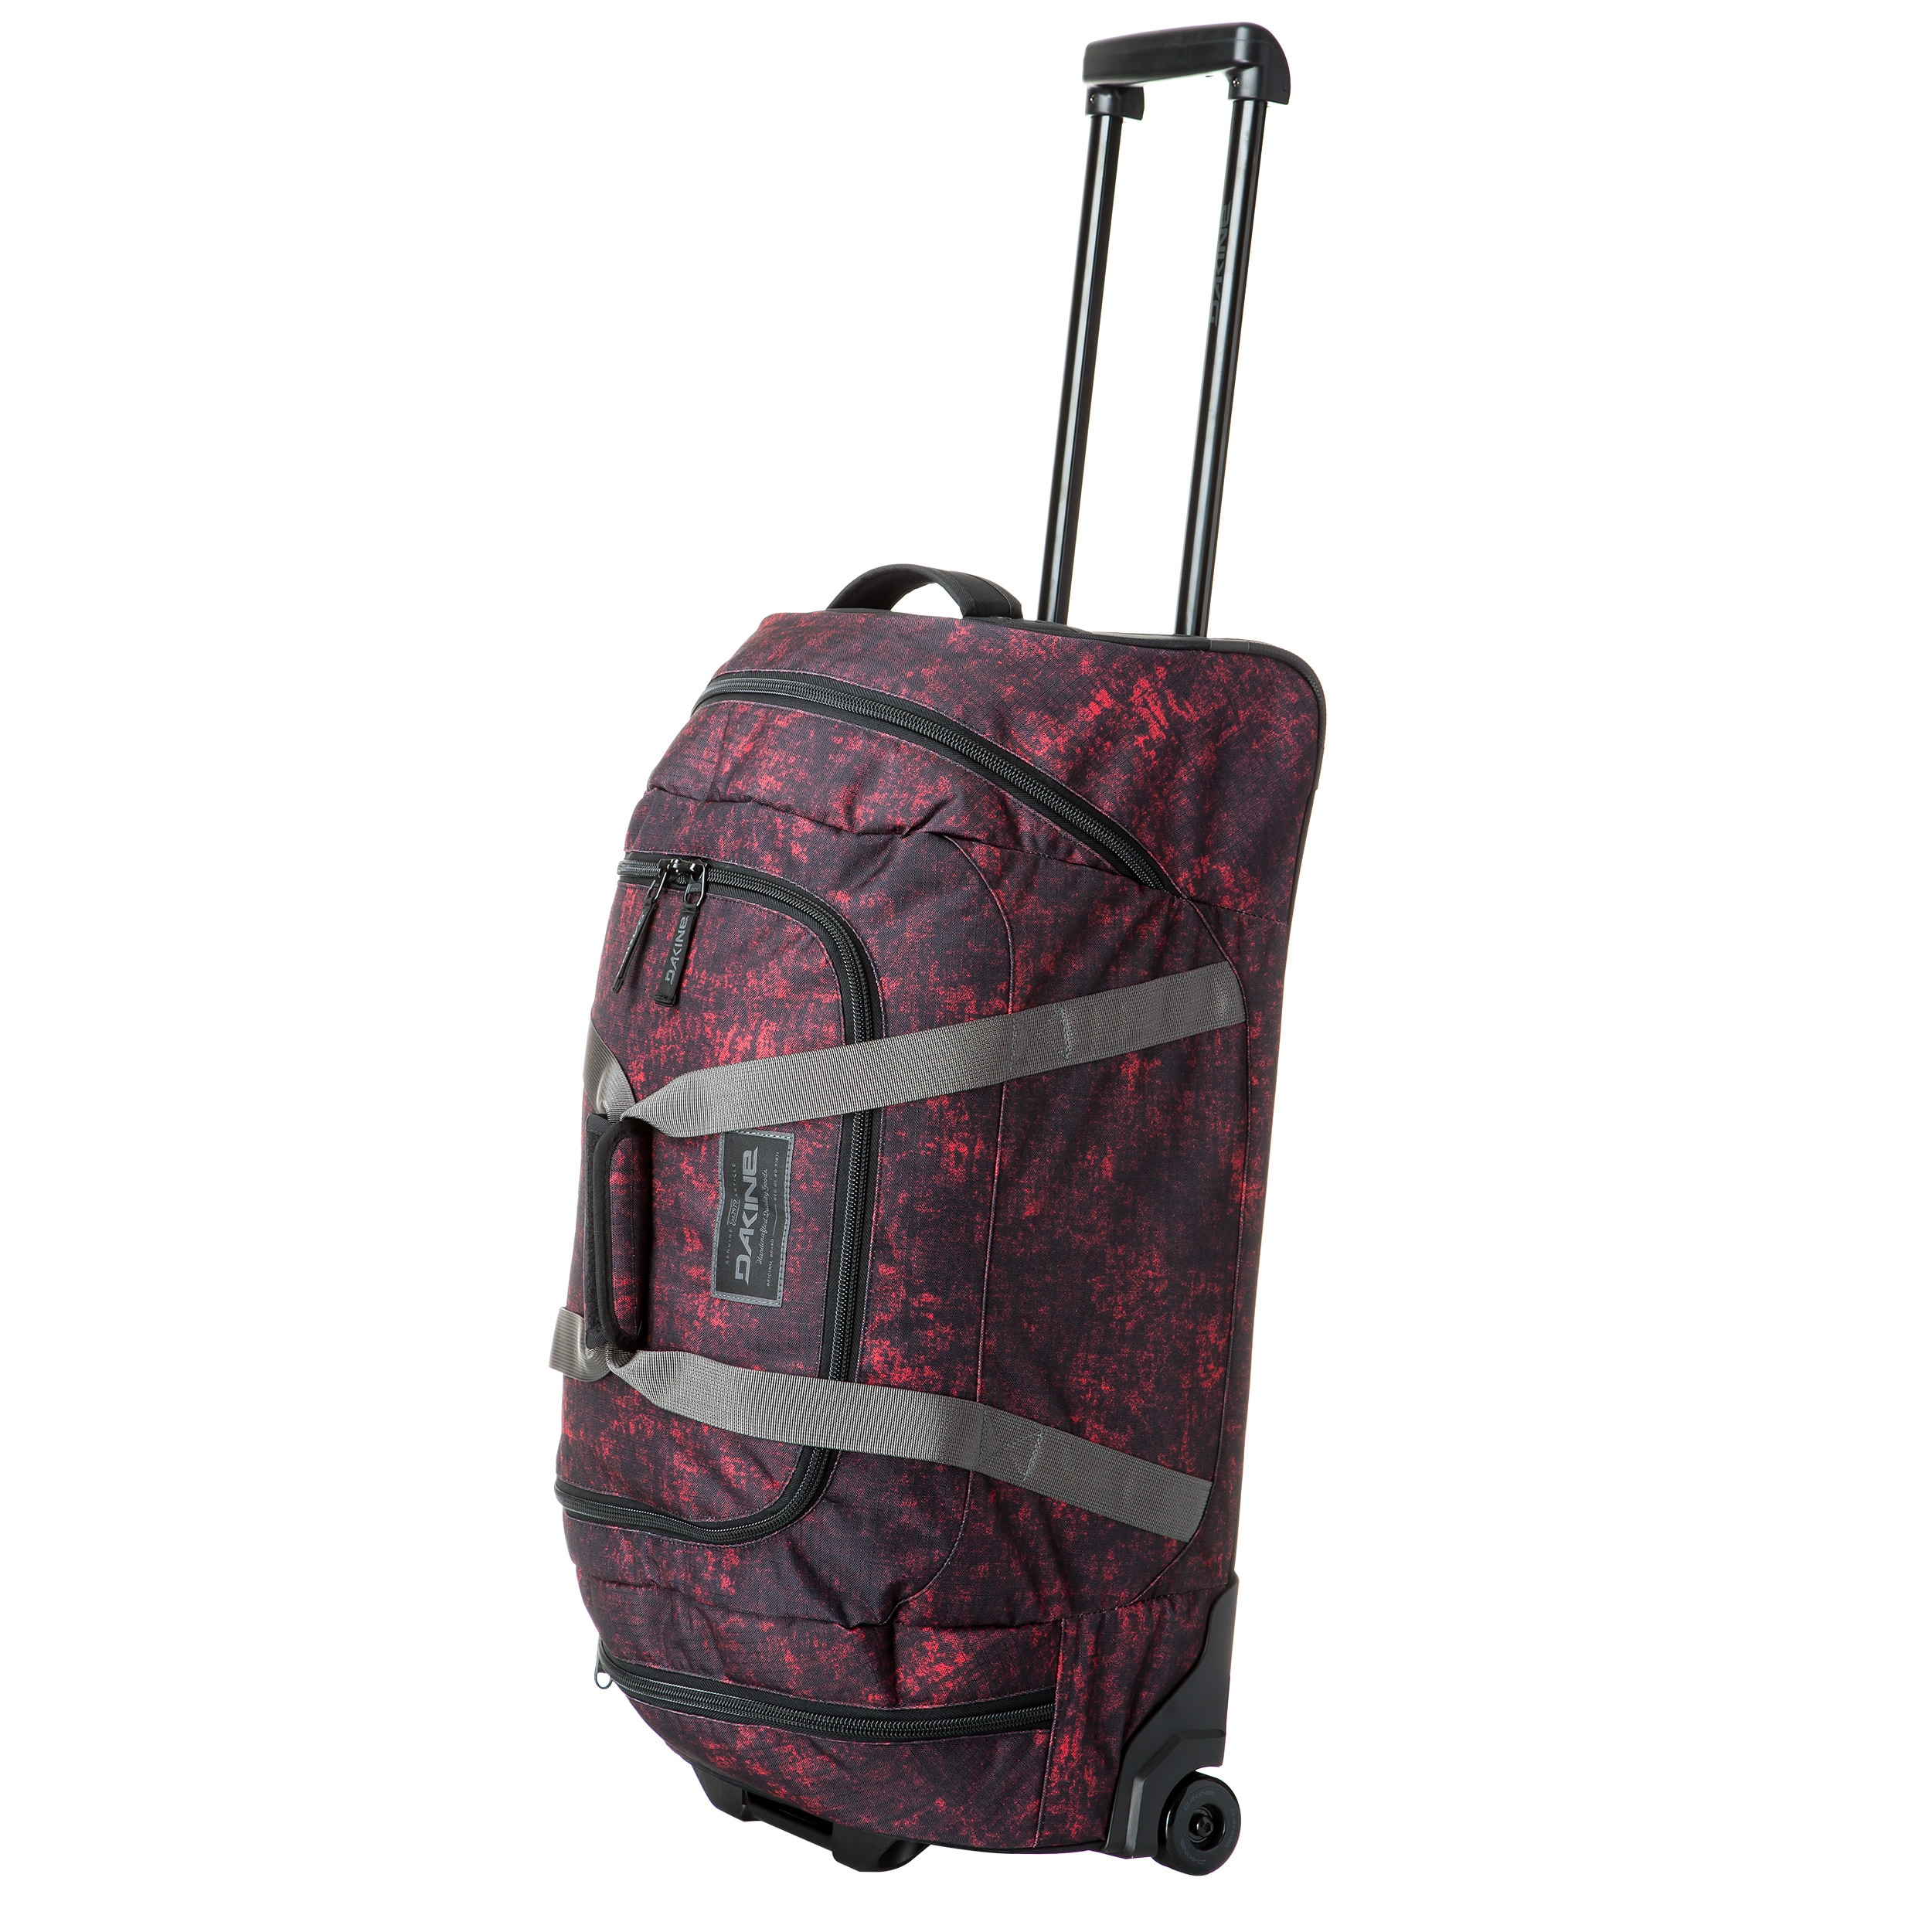 6ede853a0f6a Shop Dakine Lava 28-inch 58L Rolling Duffel Bag - Free Shipping Today -  Overstock - 11141135